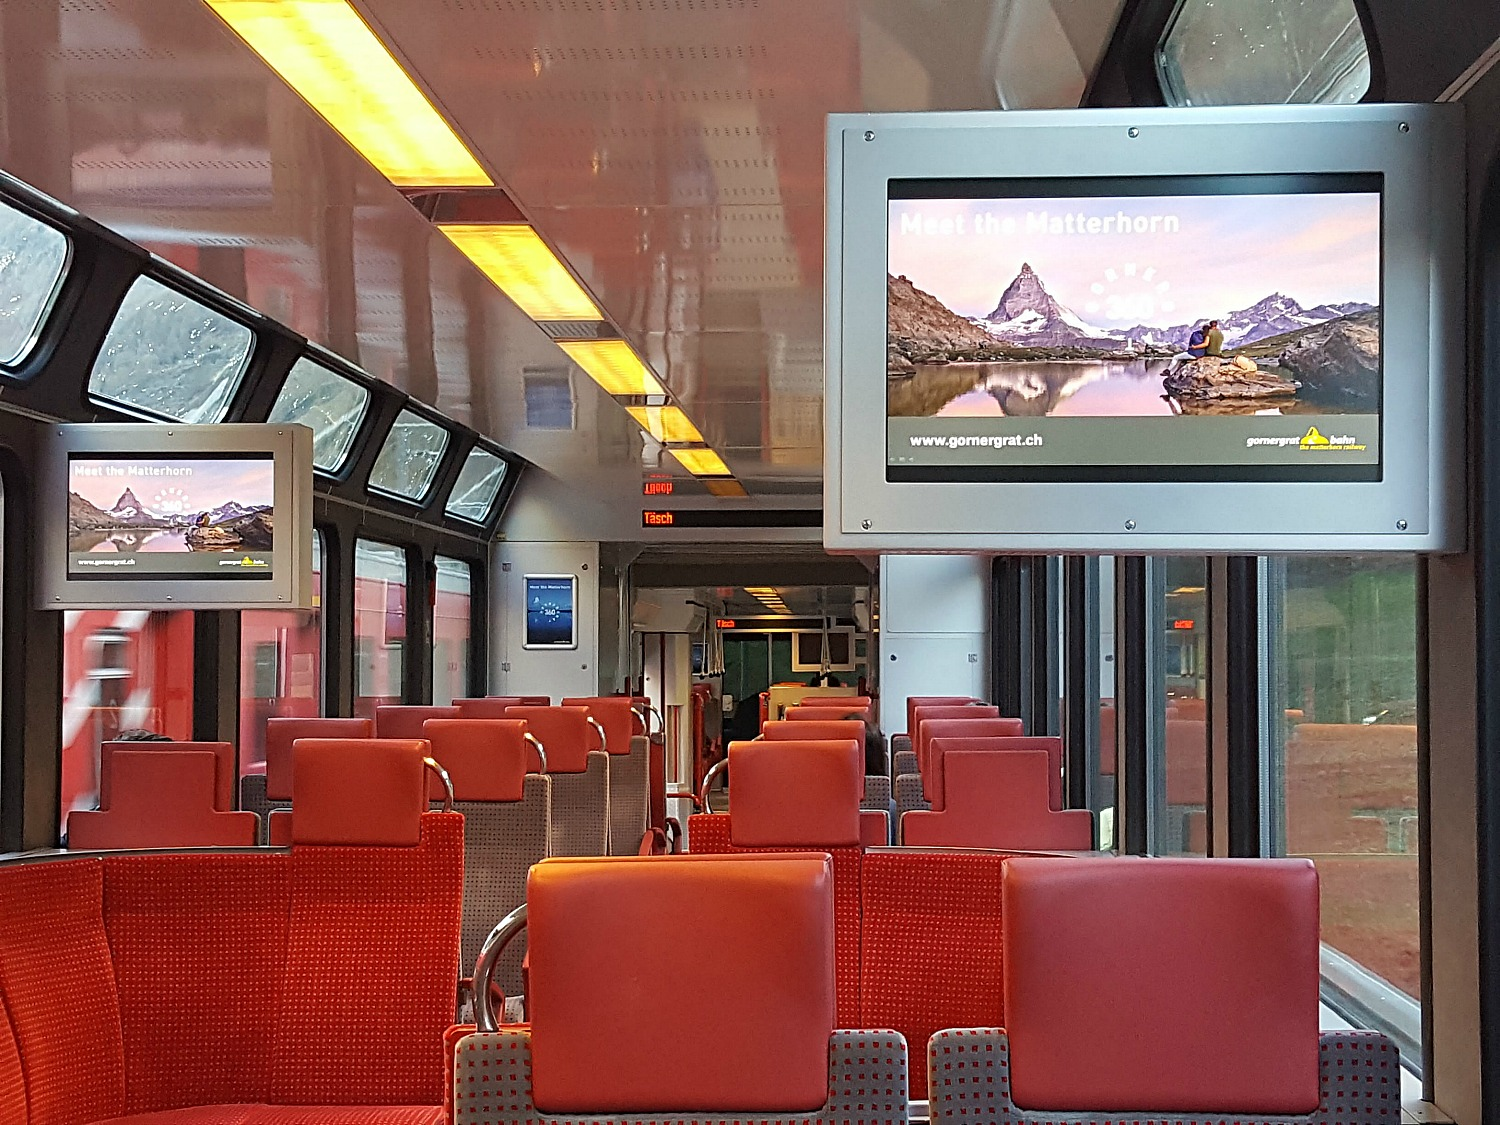 Zermatt how to visit - shuttle train from Täsch to Zermatt.